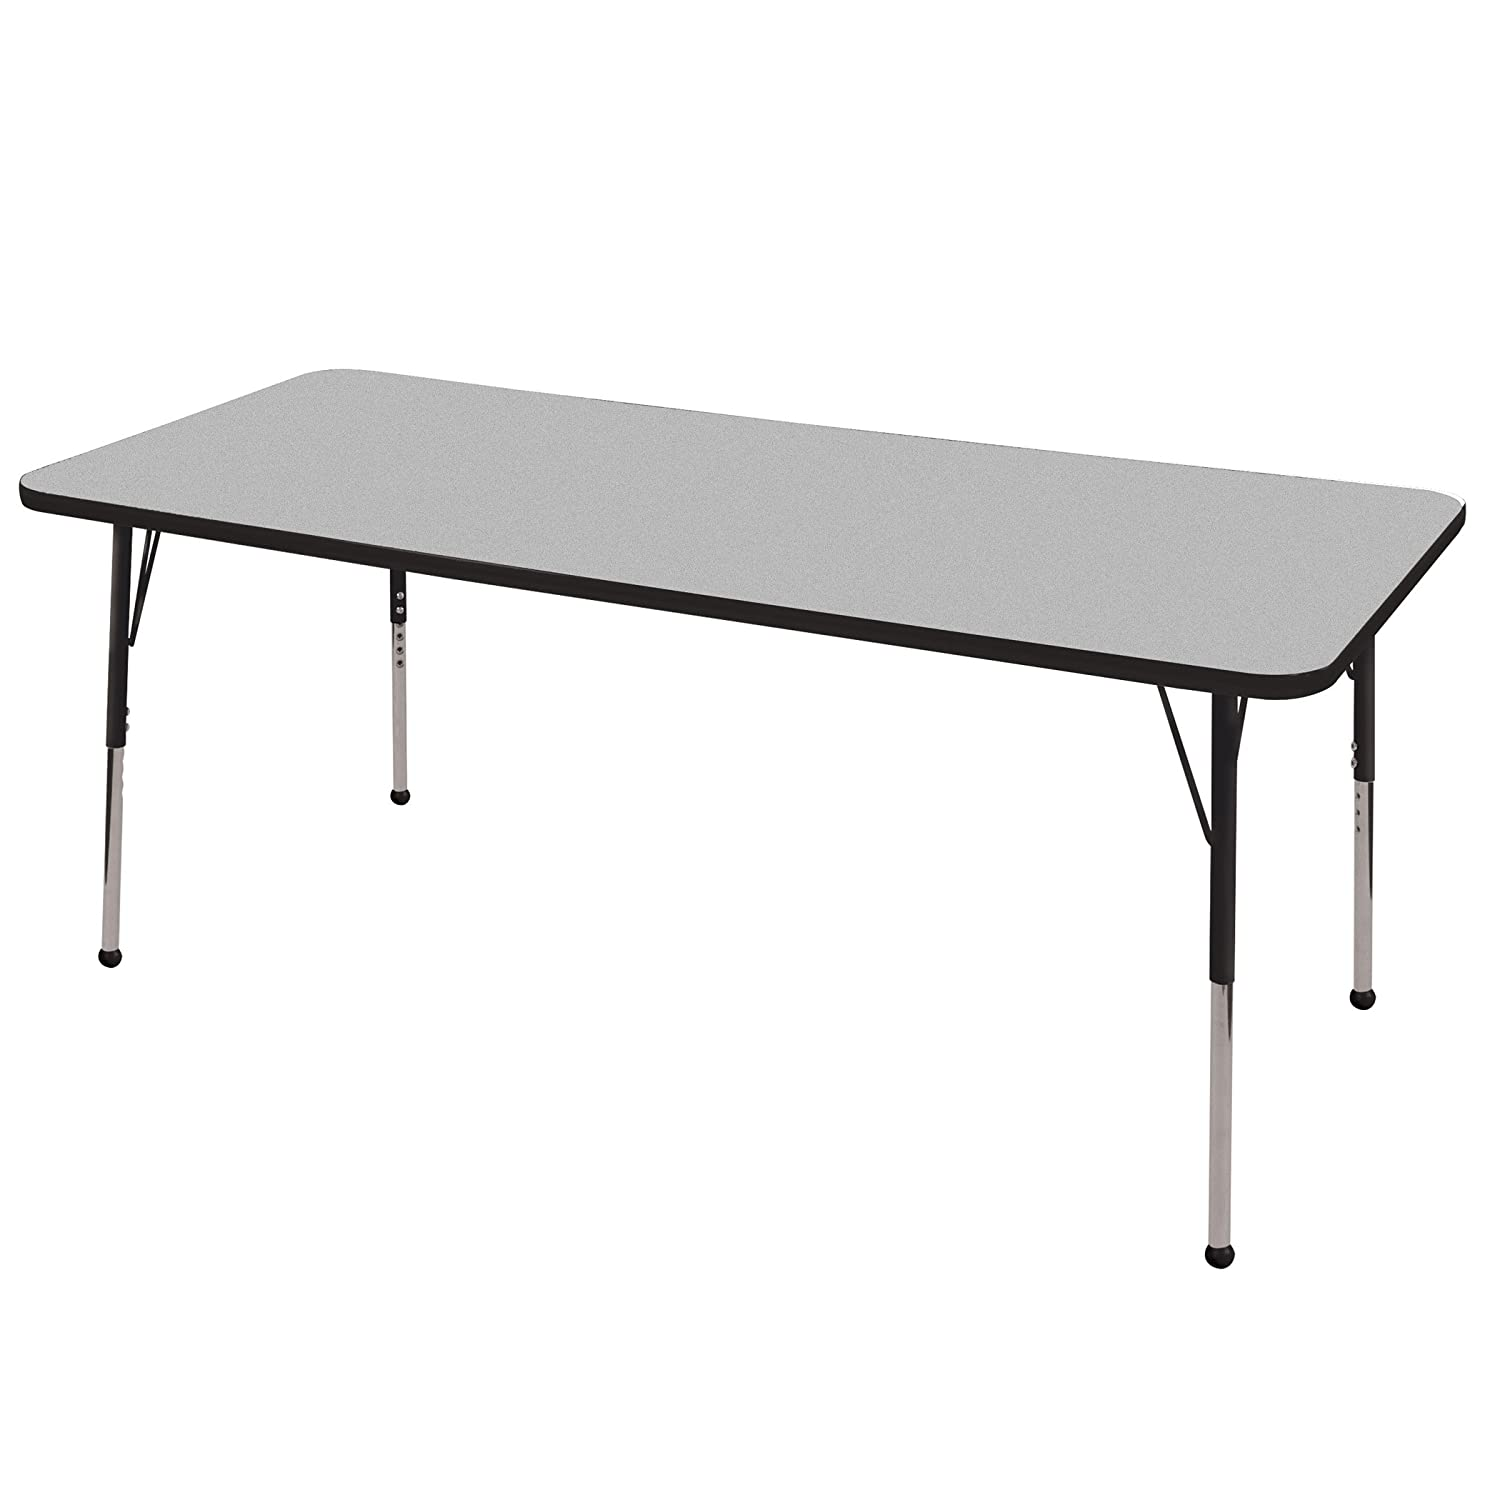 legs board of l steel base top amegawood shaped beautiful particle material adjustable metal contemporary table desk